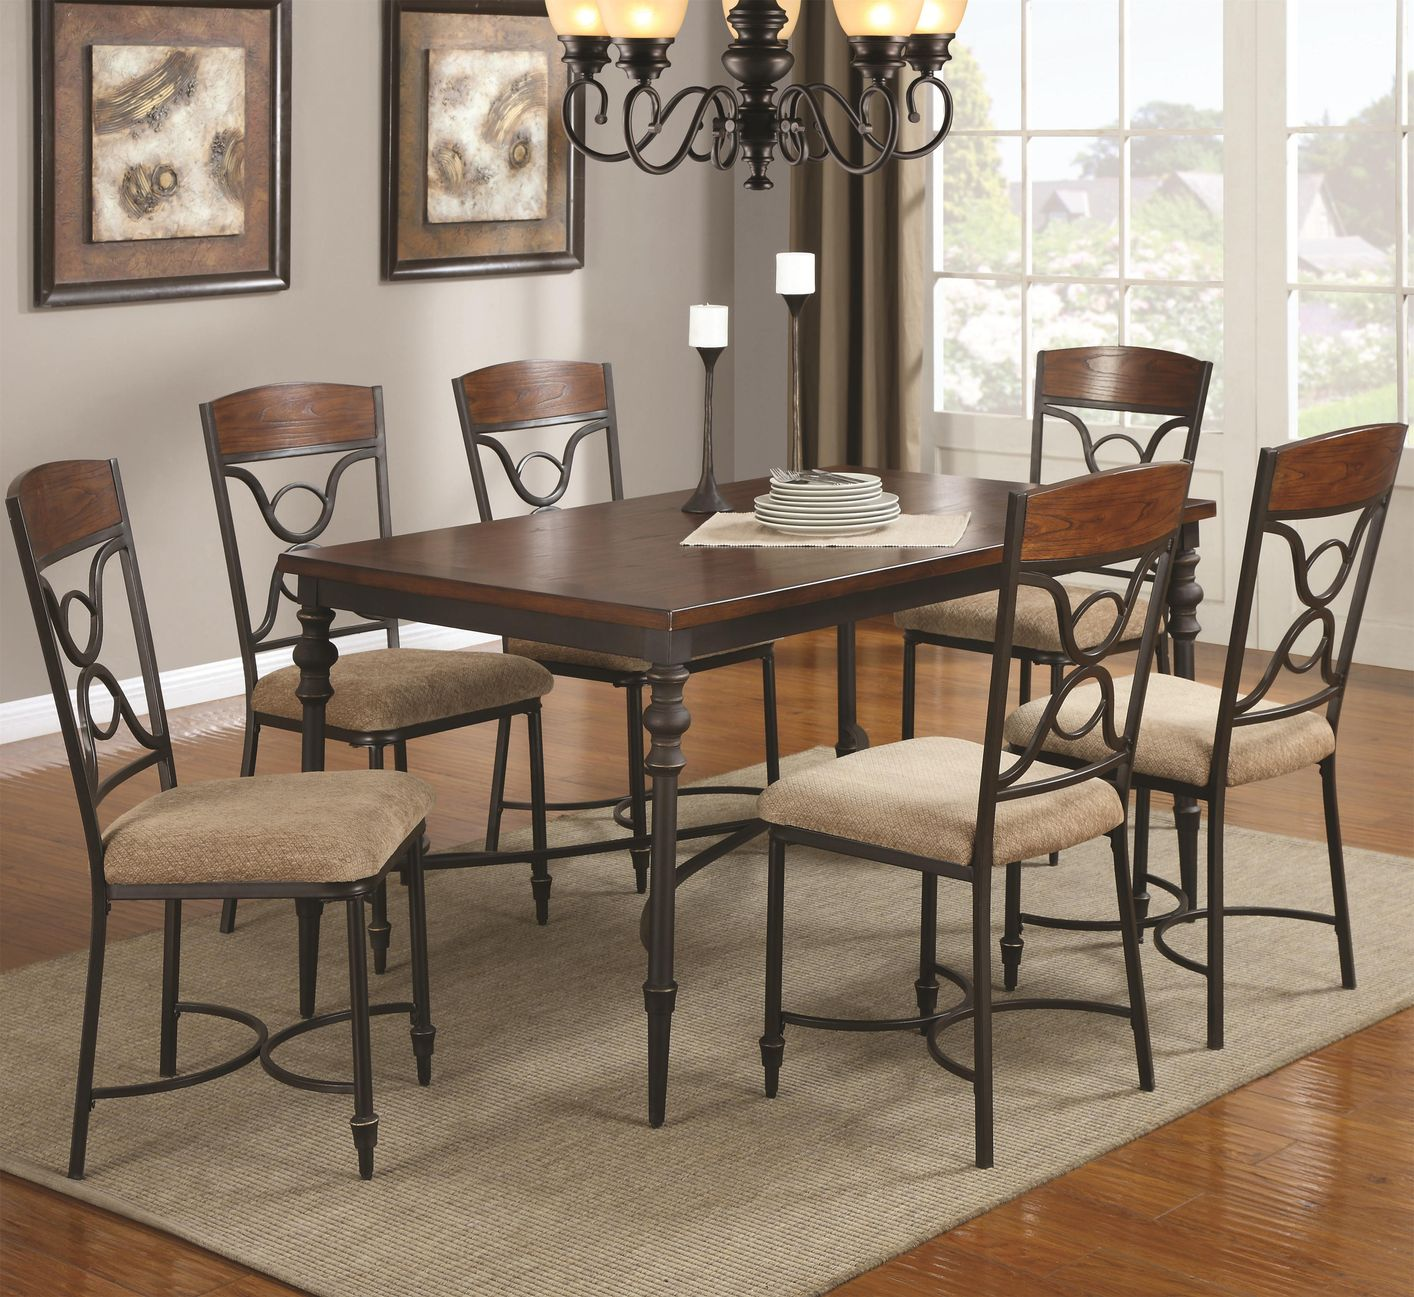 Klaus cherry metal and wood dining table set steal a for Wood dining table set